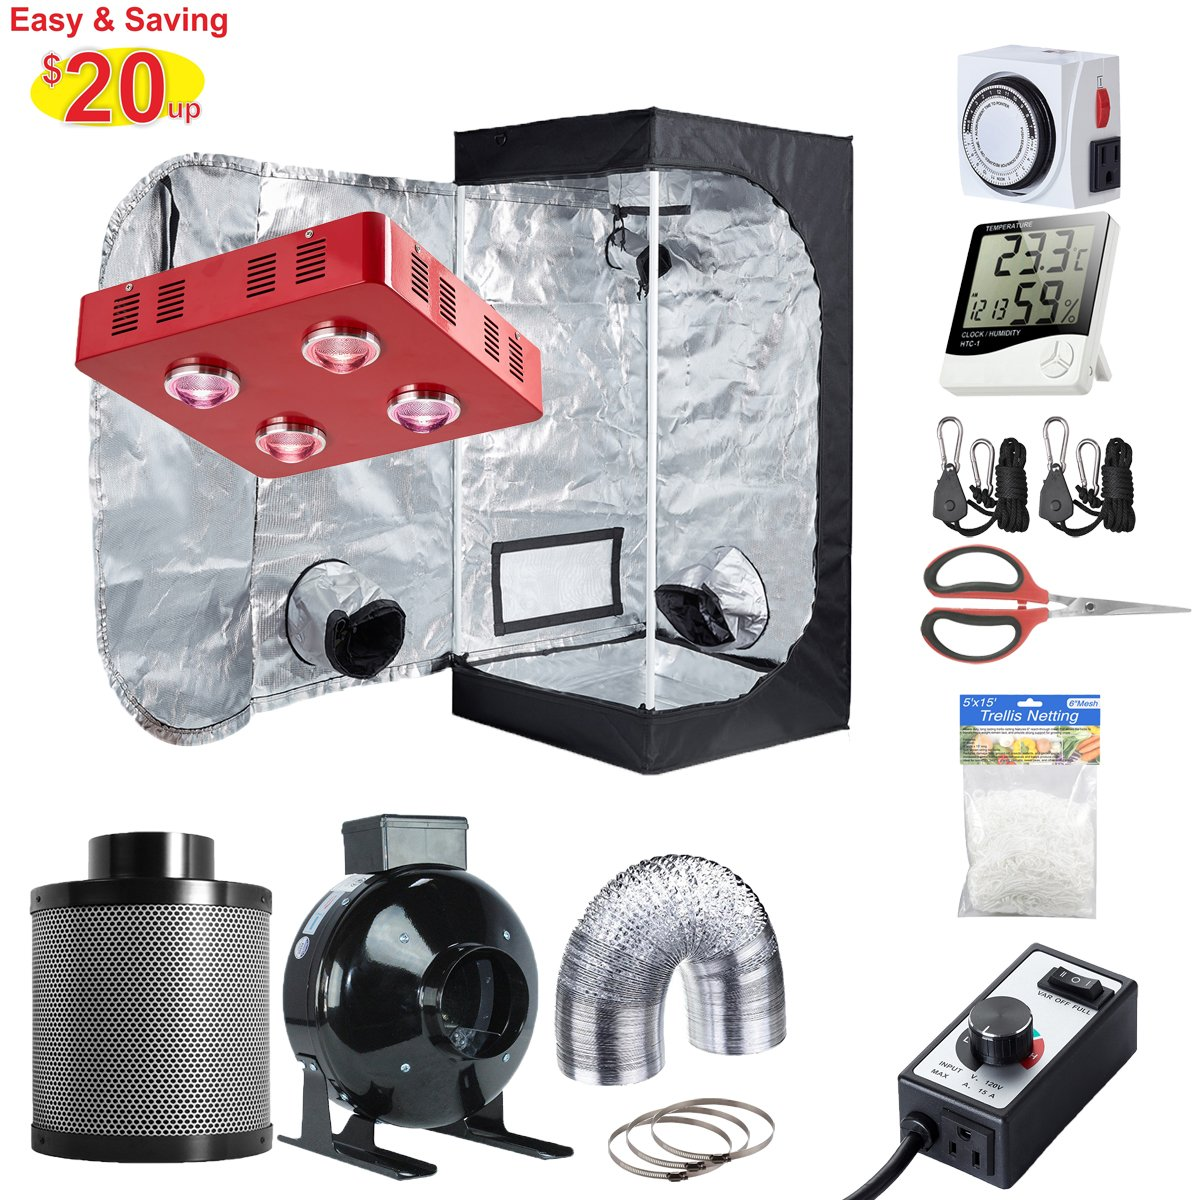 Hydro Plus Grow Tent Complete Kit LED 800W Grow Light + 4  Filter Fan Kit + 24 x24 x48  Grow Tent Room + Hydroponic Indoor Plants Growing System Accessories ...  sc 1 st  Amazon.com & Amazon.com : Hydro Plus Grow Tent Complete Kit LED 800W Grow Light + ...